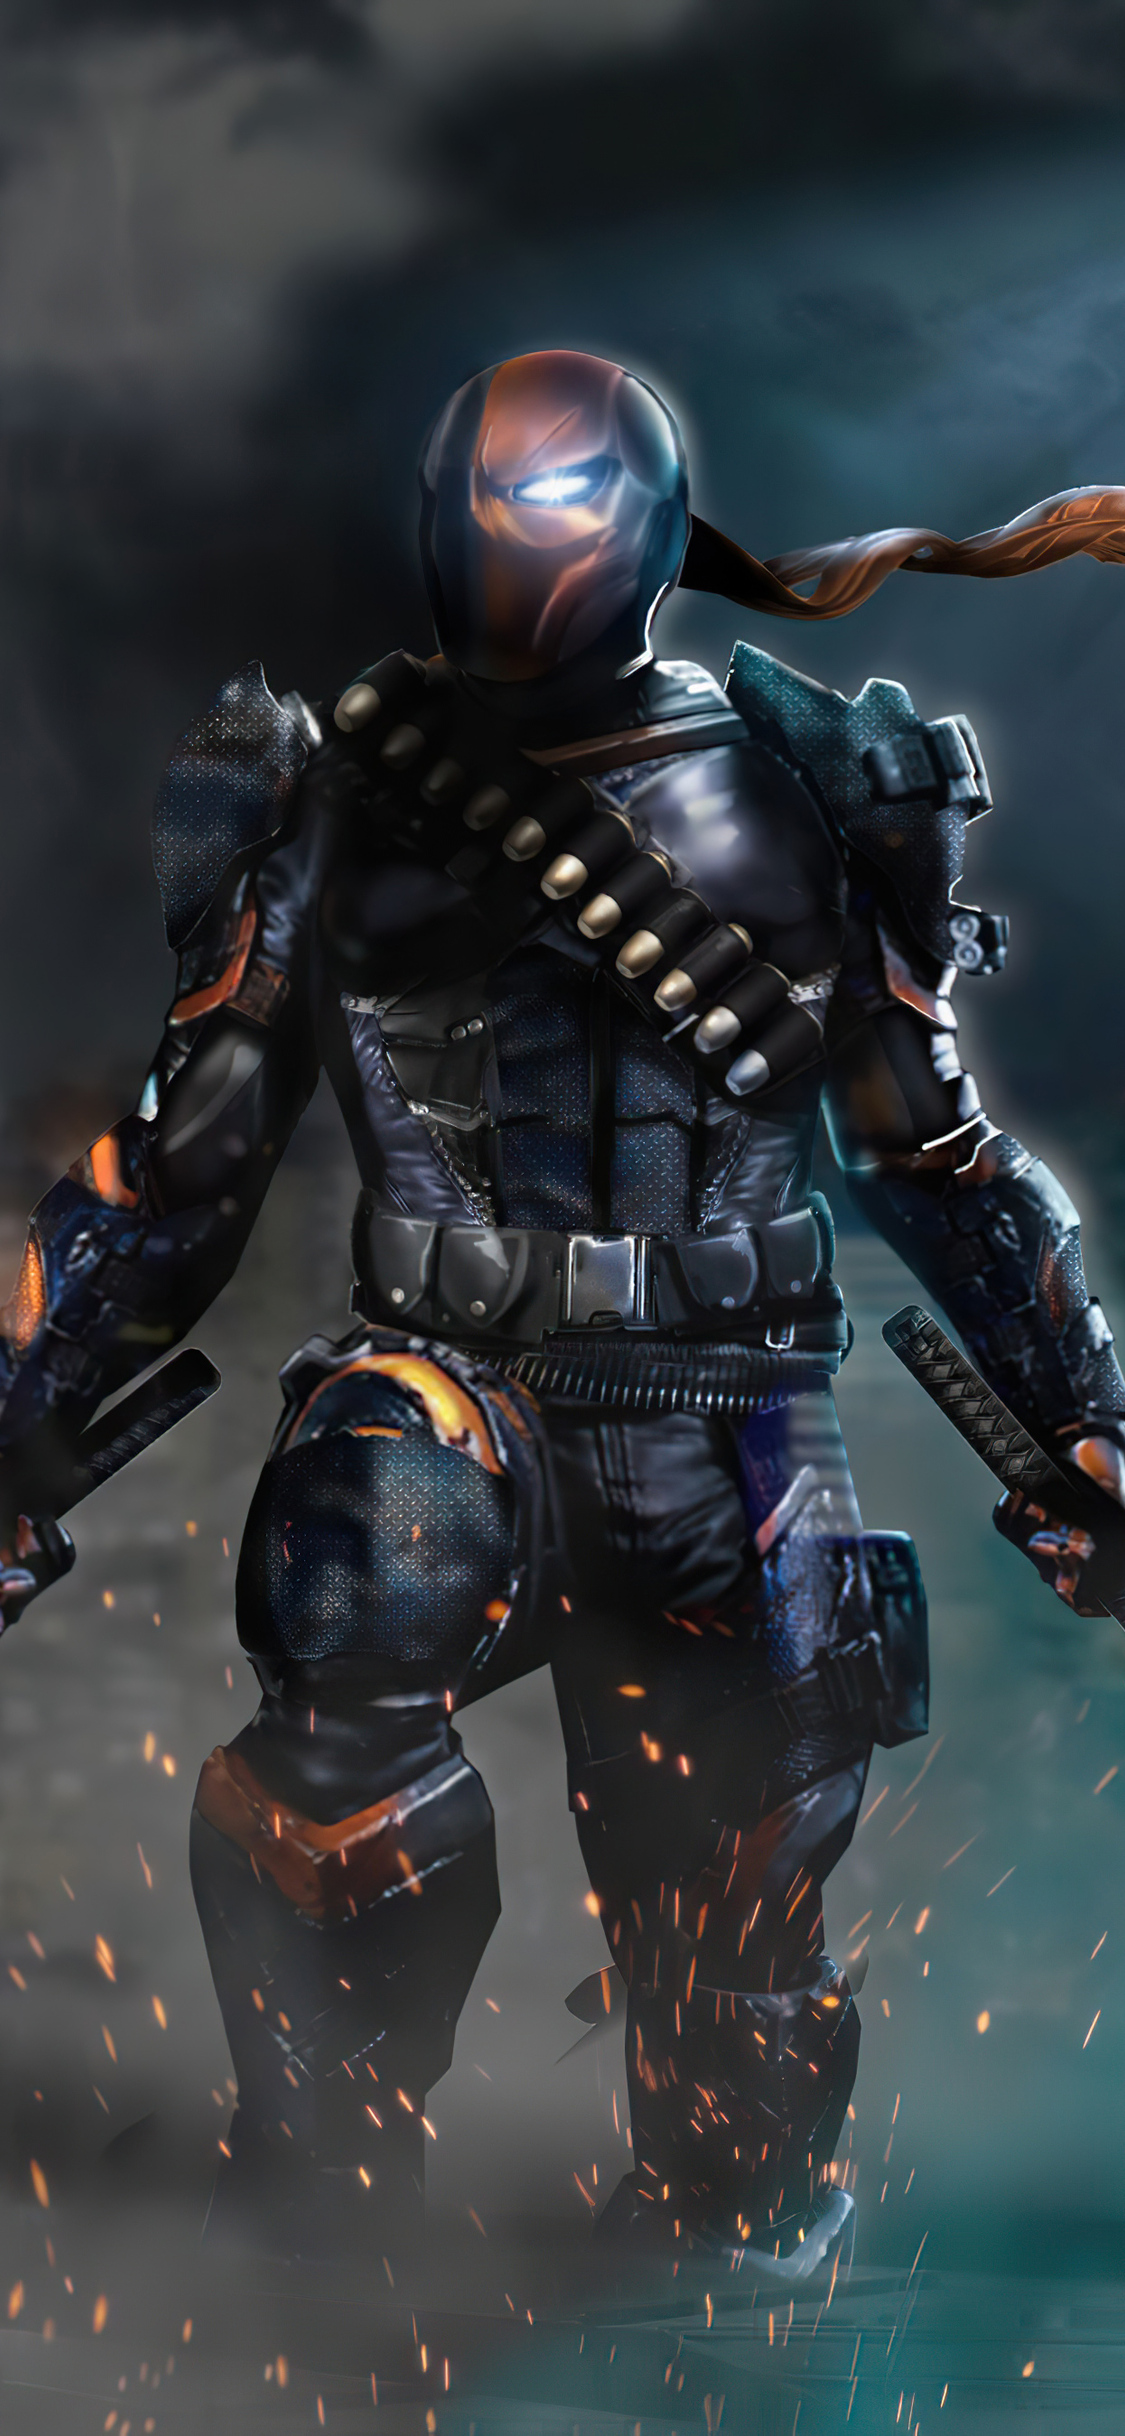 1125x2436 2020 Deathstroke 4k Artwork Iphone Xs Iphone 10 Iphone X Hd 4k Wallpapers Images Backgrounds Photos And Pictures